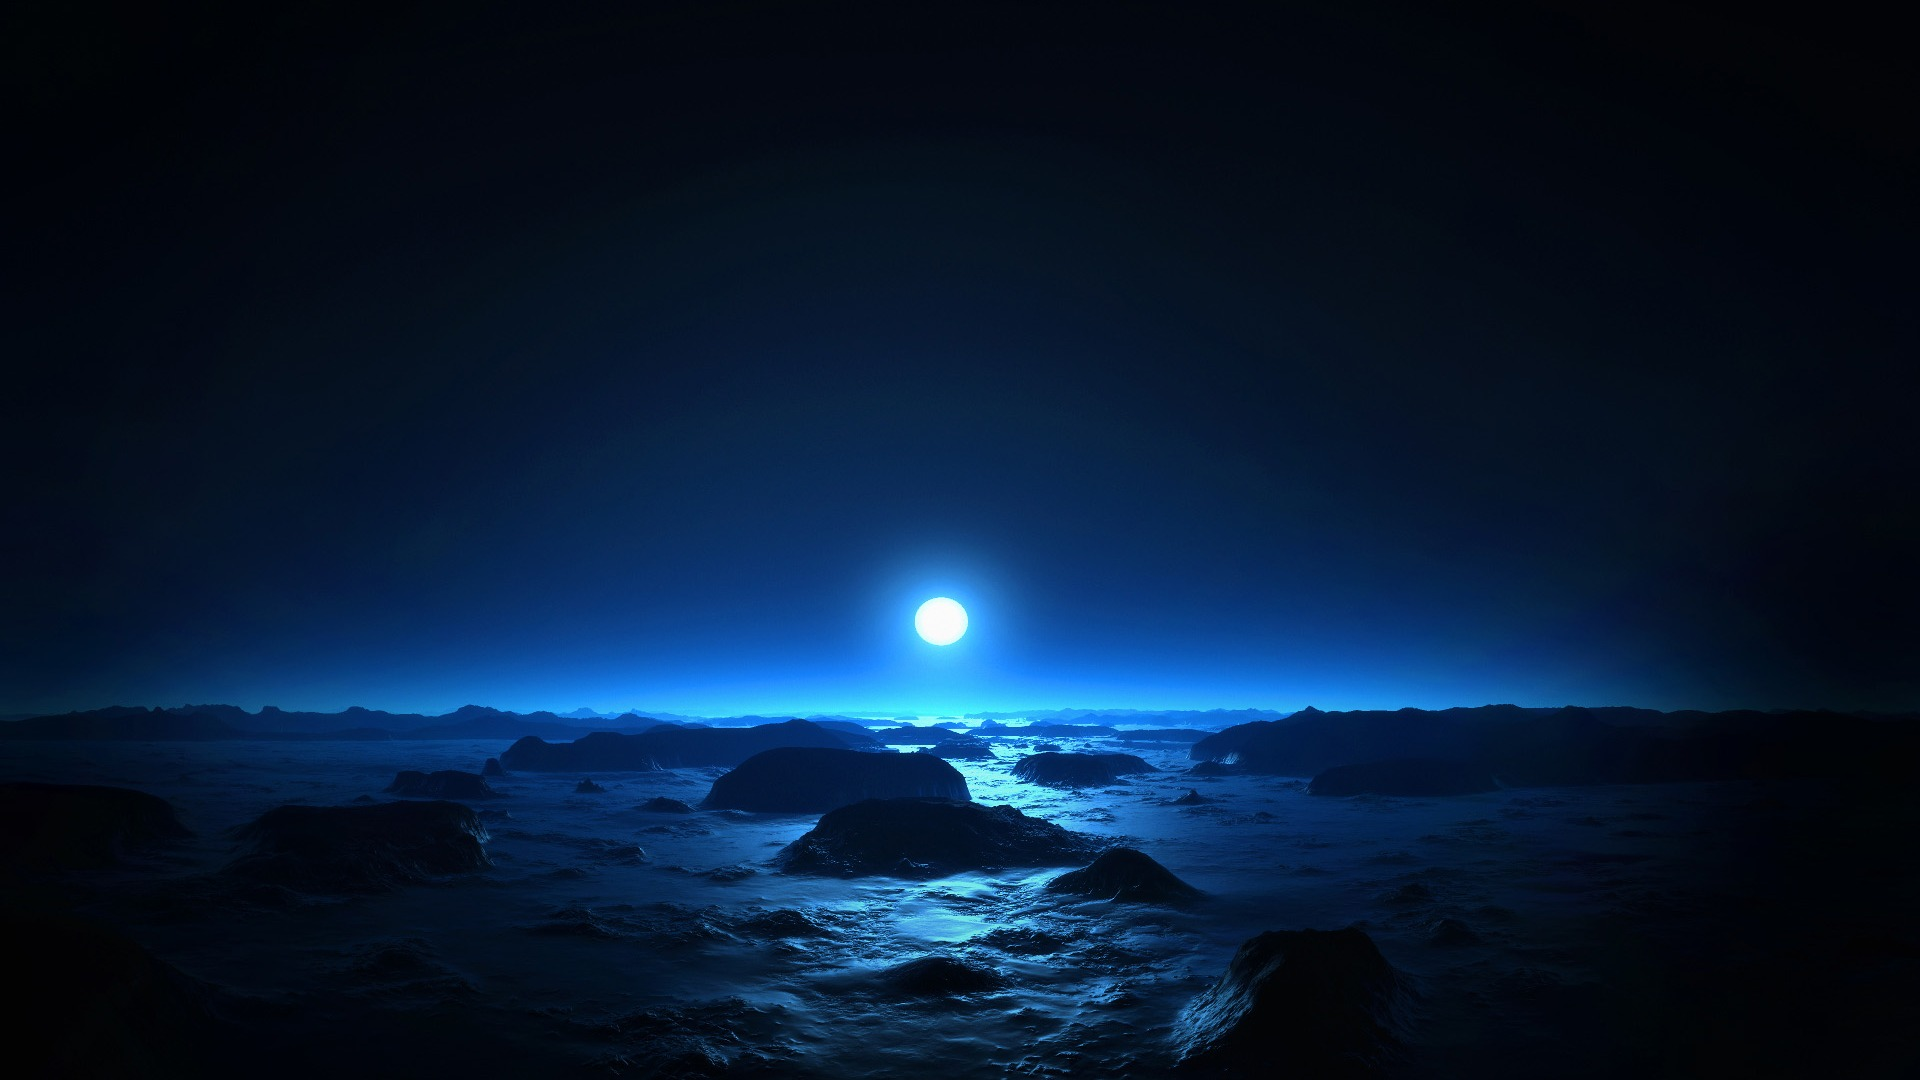 Blue Moon at Night Background